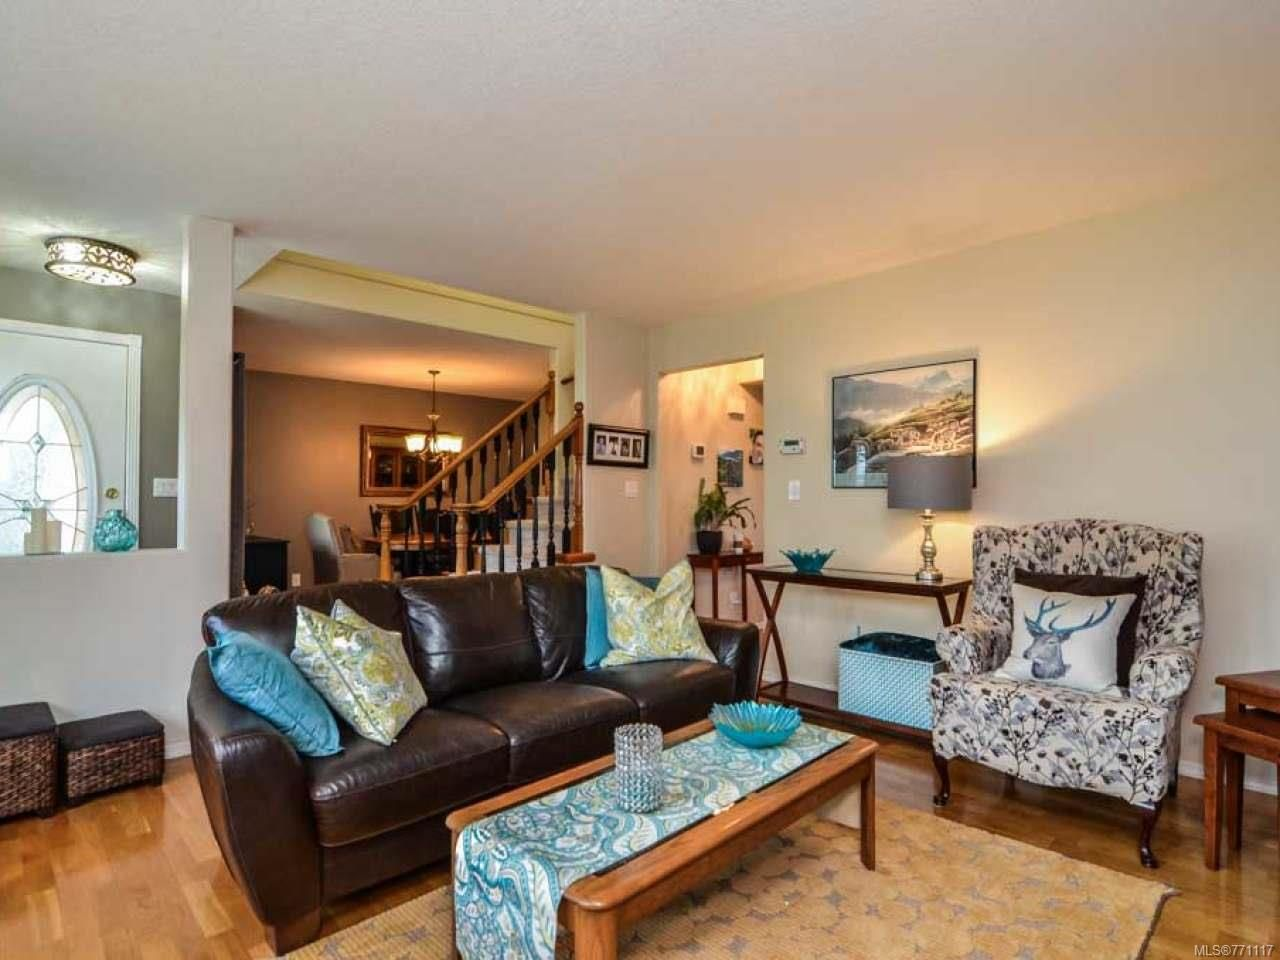 Photo 23: Photos: 697 Steenbuck Dr in CAMPBELL RIVER: CR Campbell River Central House for sale (Campbell River)  : MLS®# 771117